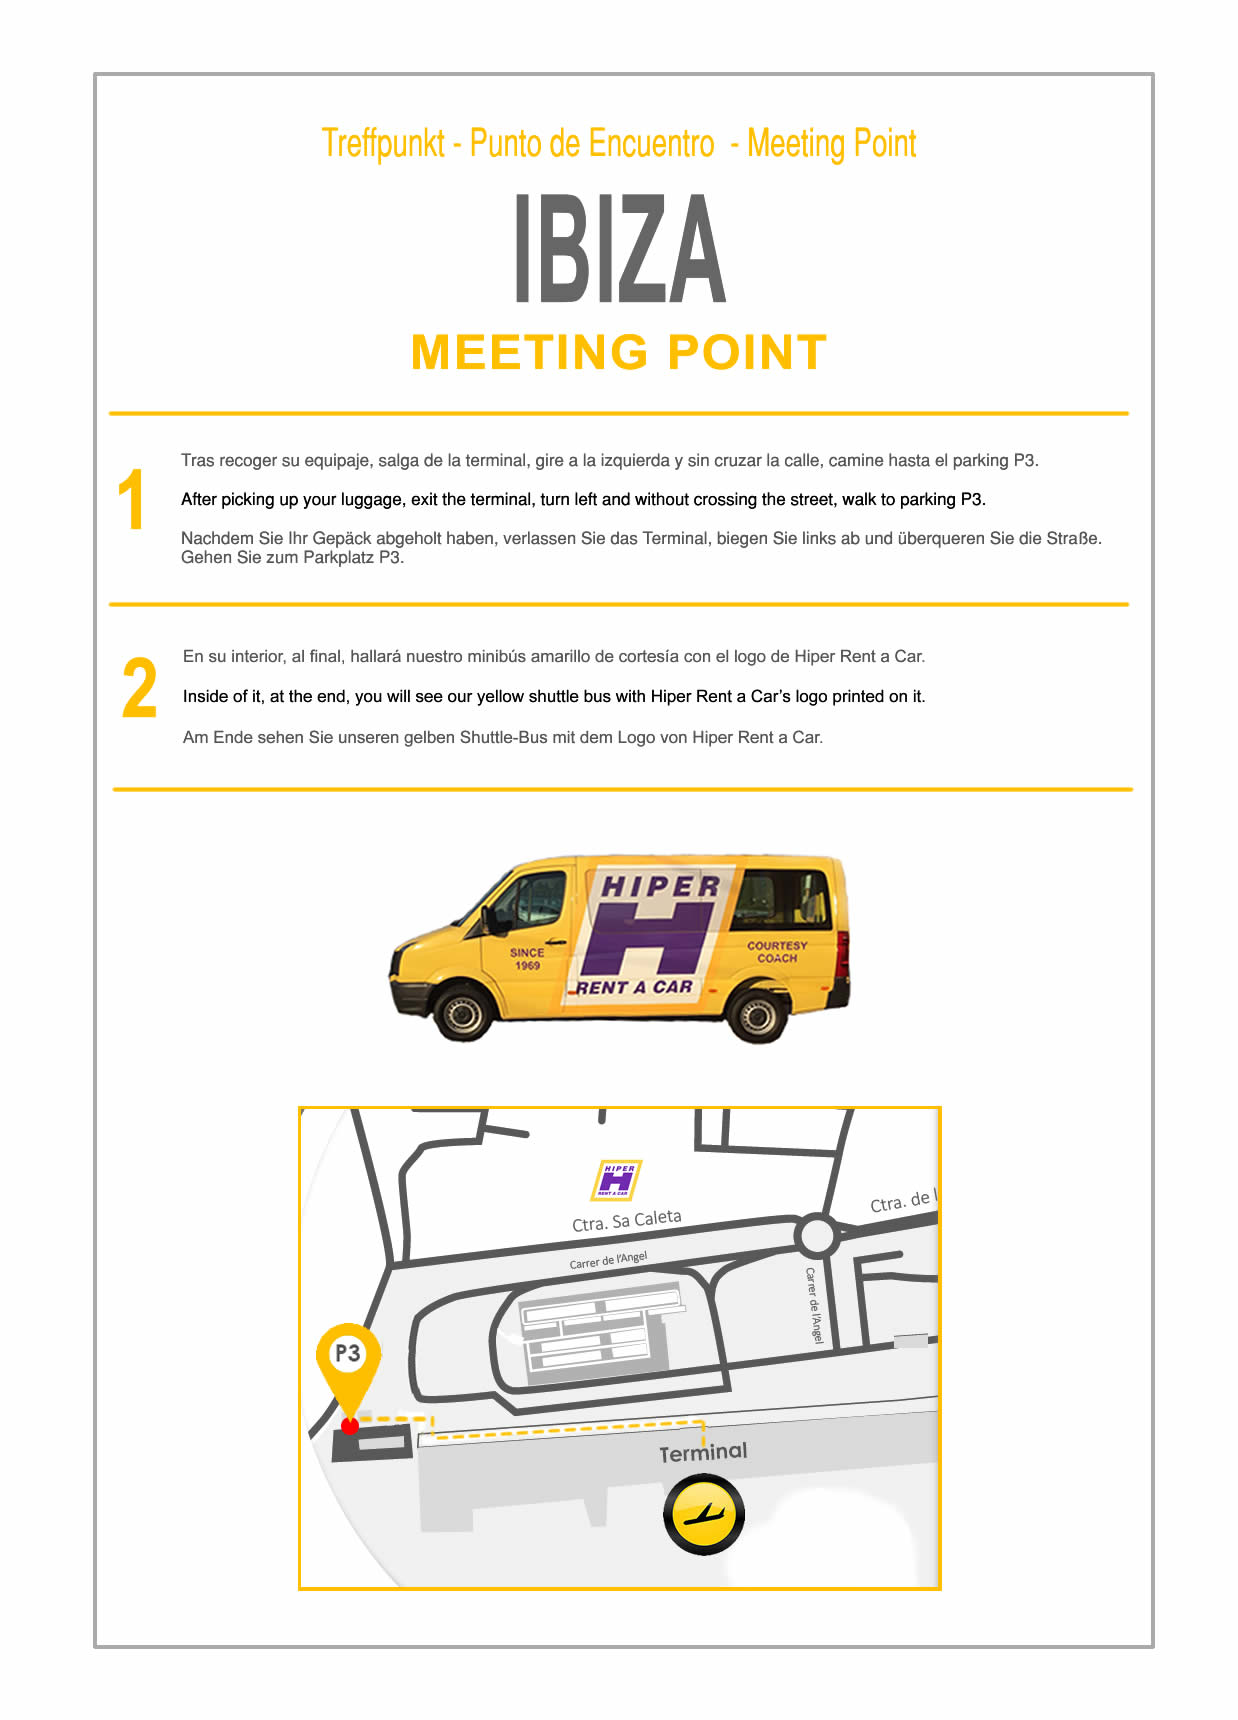 Meeting Point Ibiza Hiper